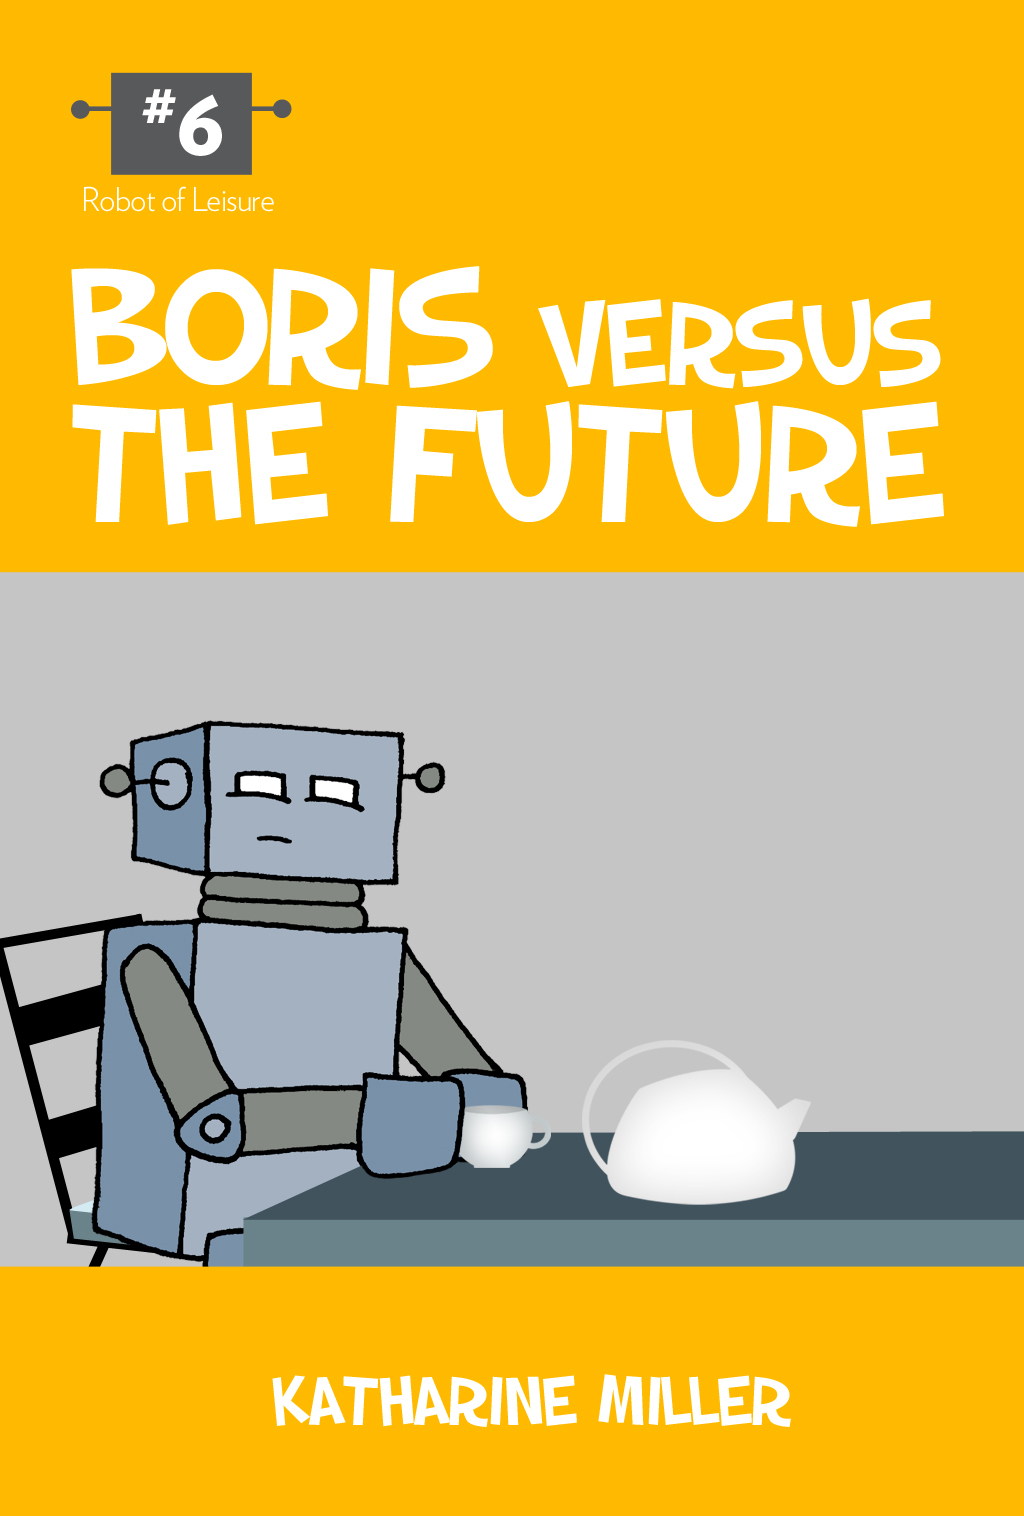 Boris Versus the Future